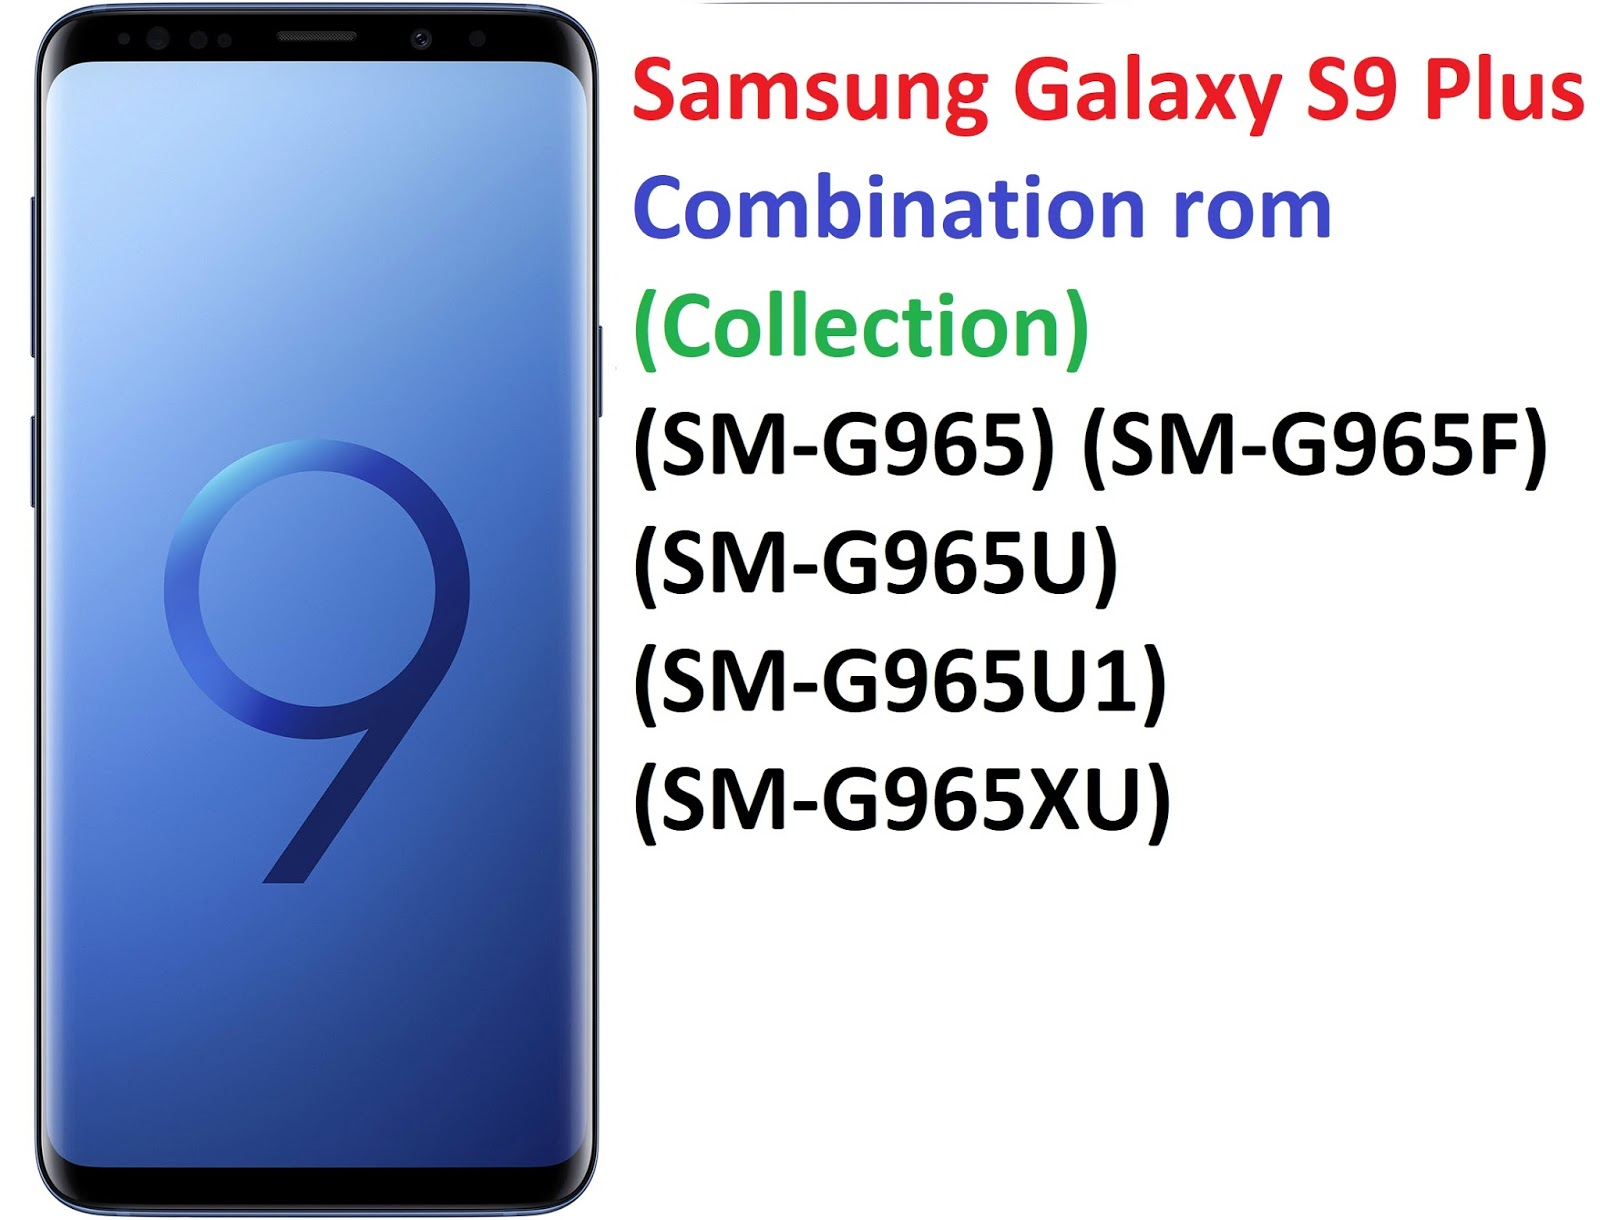 Samsung Galaxy S9 Plus Combination rom (Collection) (SM-G965